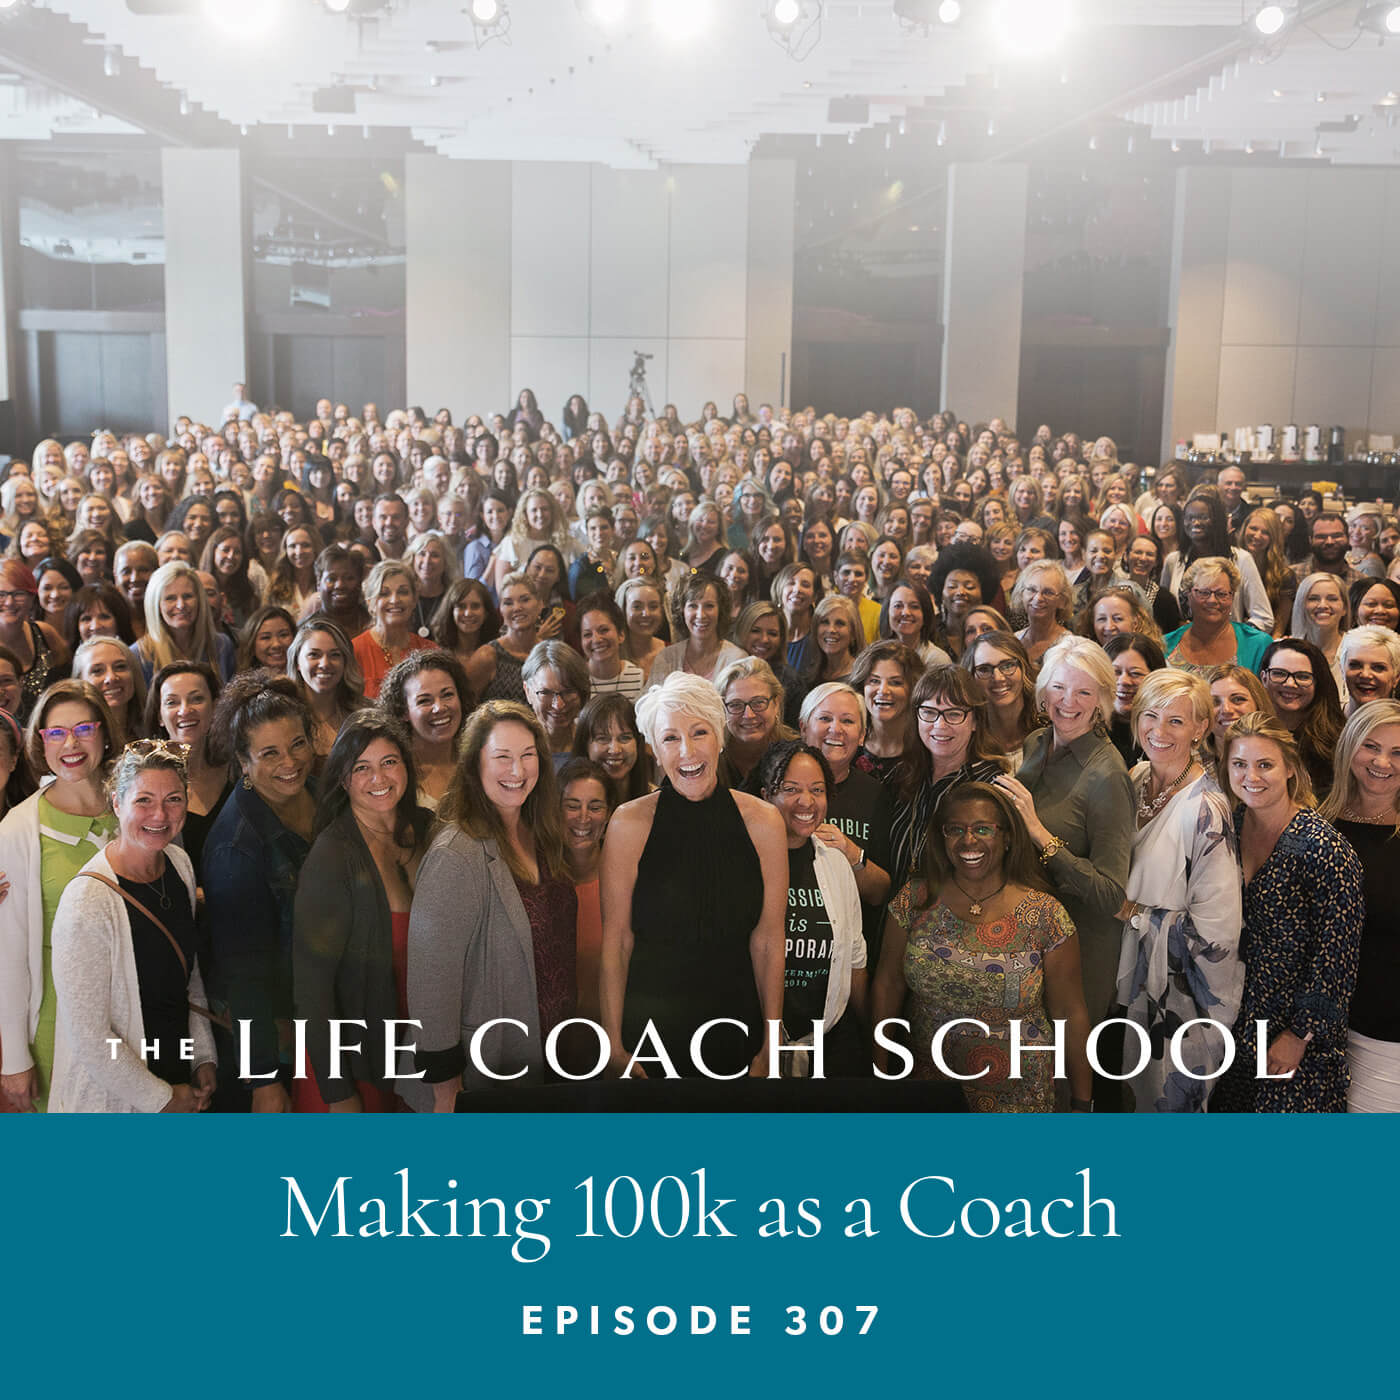 The Life Coach School Podcast with Brooke Castillo | Episode 307 | Making 100k as a Coach